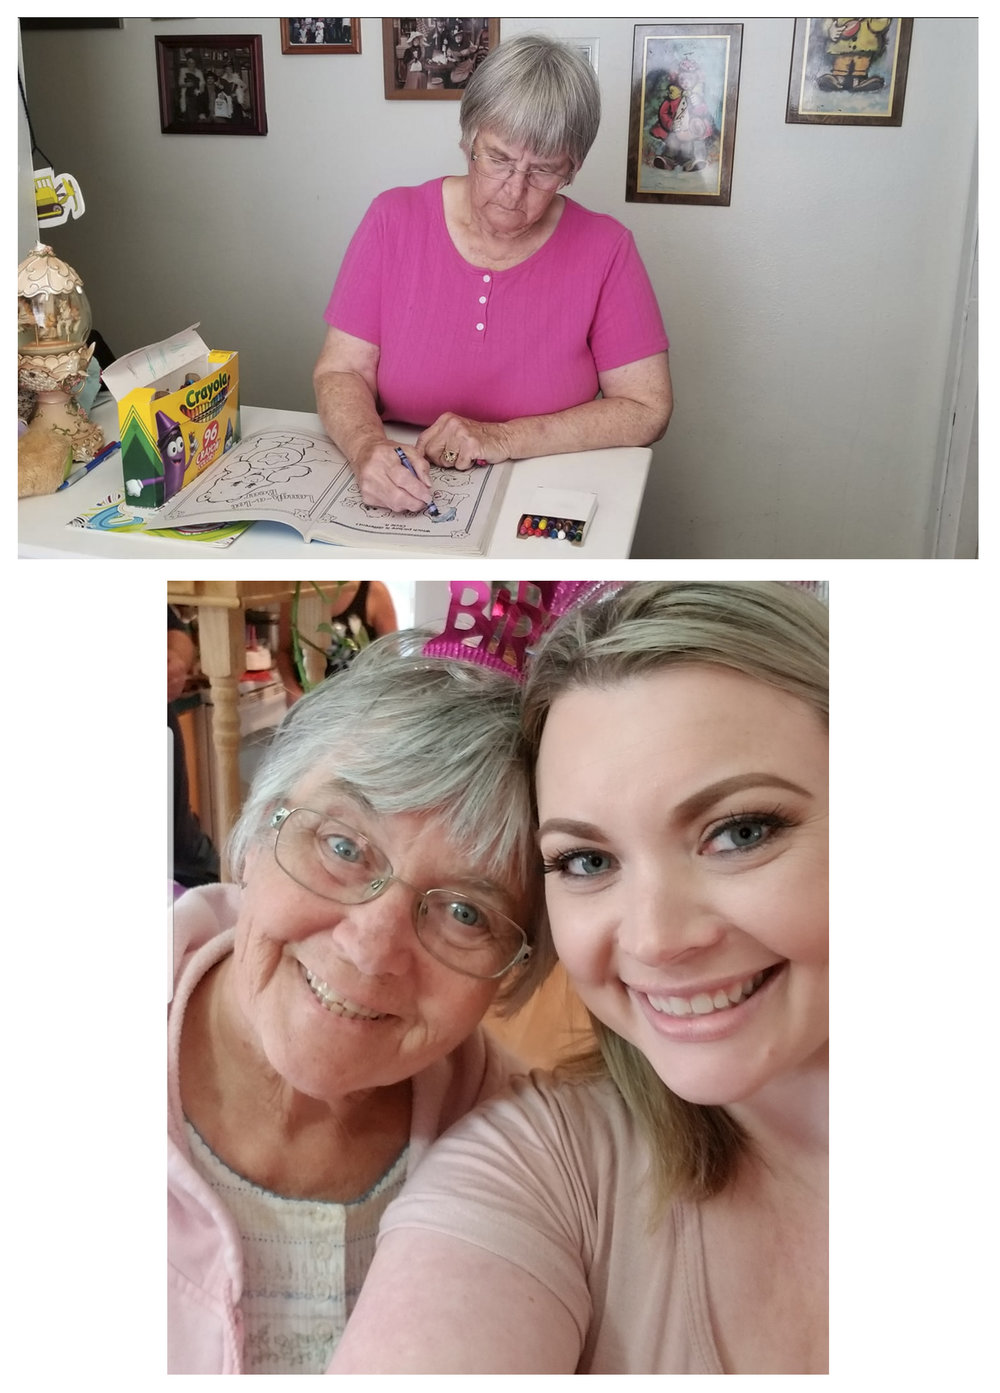 Melynda Downard + Donna (Mother) - Corvallis, OregonMy name is Mindy (Melynda) Downard, I am 38yrs old. My mother, Donna was diagnosed with Alzheimer's around 3 yrs ago. Shes 75. We live together and I am her caregiver. I also have a 9yr old son who i have part time and a 2yr old daughter who I have full time. I'm a single mom. I believe that falls into the sandwich category you had listed. On top of those things I run a small business. It's a salon here in Corvallis. My life is crazy and it's hard to hold it together. Even harder because I'm navigating all of this alone. I get help from one of my nieces and my oldest sister is paying monthly for that. No respite care, no time off. I'm either at work, or I'm home with my family.My mother was diagnosed with Alzheimer's appx 3 years ago. She spends a majority of her time coloring these days. My mom was a woman who ran her own cleaning business and worked hard all her life. She raised the last three of her children completely by herself. She was selfless and brave and never gave up on any of us through our countless trials. Marriages, divorces, trouble with the law, addictions, children, she remained a consistent source of support and unconditional love to us. She was everything that anyone could ask for in a mom She came to me yesterday and told me someone had suggested maybe she could sell some of the things she colors because shes so good at it. I honestly do not know if the suggestion was real or imagined lol but it doesnt matter and with the help of some friends we came up with the idea to create a page where she could display her work. This site will be a work in progress as ideas come to me. It was created to help my mom still feel useful as her Alzheimer's progresses. Itll be interesting to see how her artwork changes over time as well. Please feel free to leave me any suggestions you might have or any thoughts I can share with my mom as well. I will be admin of the page as she isnt capable of running it herself. My name is Mindy. My moms name is Donna. Welcome to Alzheimer's speaks through CrayonsLet's see... as moms condition progresses she spends most of her time coloring as I mentioned on the phone with you. But I dont ever really leave her home alone so we do mostly everything together. On Thursdays and Fridays she even comes to work with me. She sweeps up after haircuts and folds towels while shes there at the salon. She cleaned houses for a living and really likes to try to keep the house work up at home as well. We've been doing gardening together this year. Bought and planted a lot of flowers. She likes to clean up outside when the weather is nice. We have 3 dogs, 2 of which are very partial to mom and she loves them. They sleep with her at night. We took my kids to the Enchanted Forest just recently. It's a yearly thing for us to go. When I go to visit friends, mom comes along. Group activities, such as 3rd of July fireworks in Newport, we brought mom. Shes a big part of everything. All my friends and clients at the shop love her. Before she was diagnosed with Alzheimer's, shopping was always a favorite thing we did and we still try to as much as possible, though she hardly ever wants anything lol. My mom was always my best friend and we've been extremely close my whole life. That part hasn't changed even though the disease is taking her away. I called her